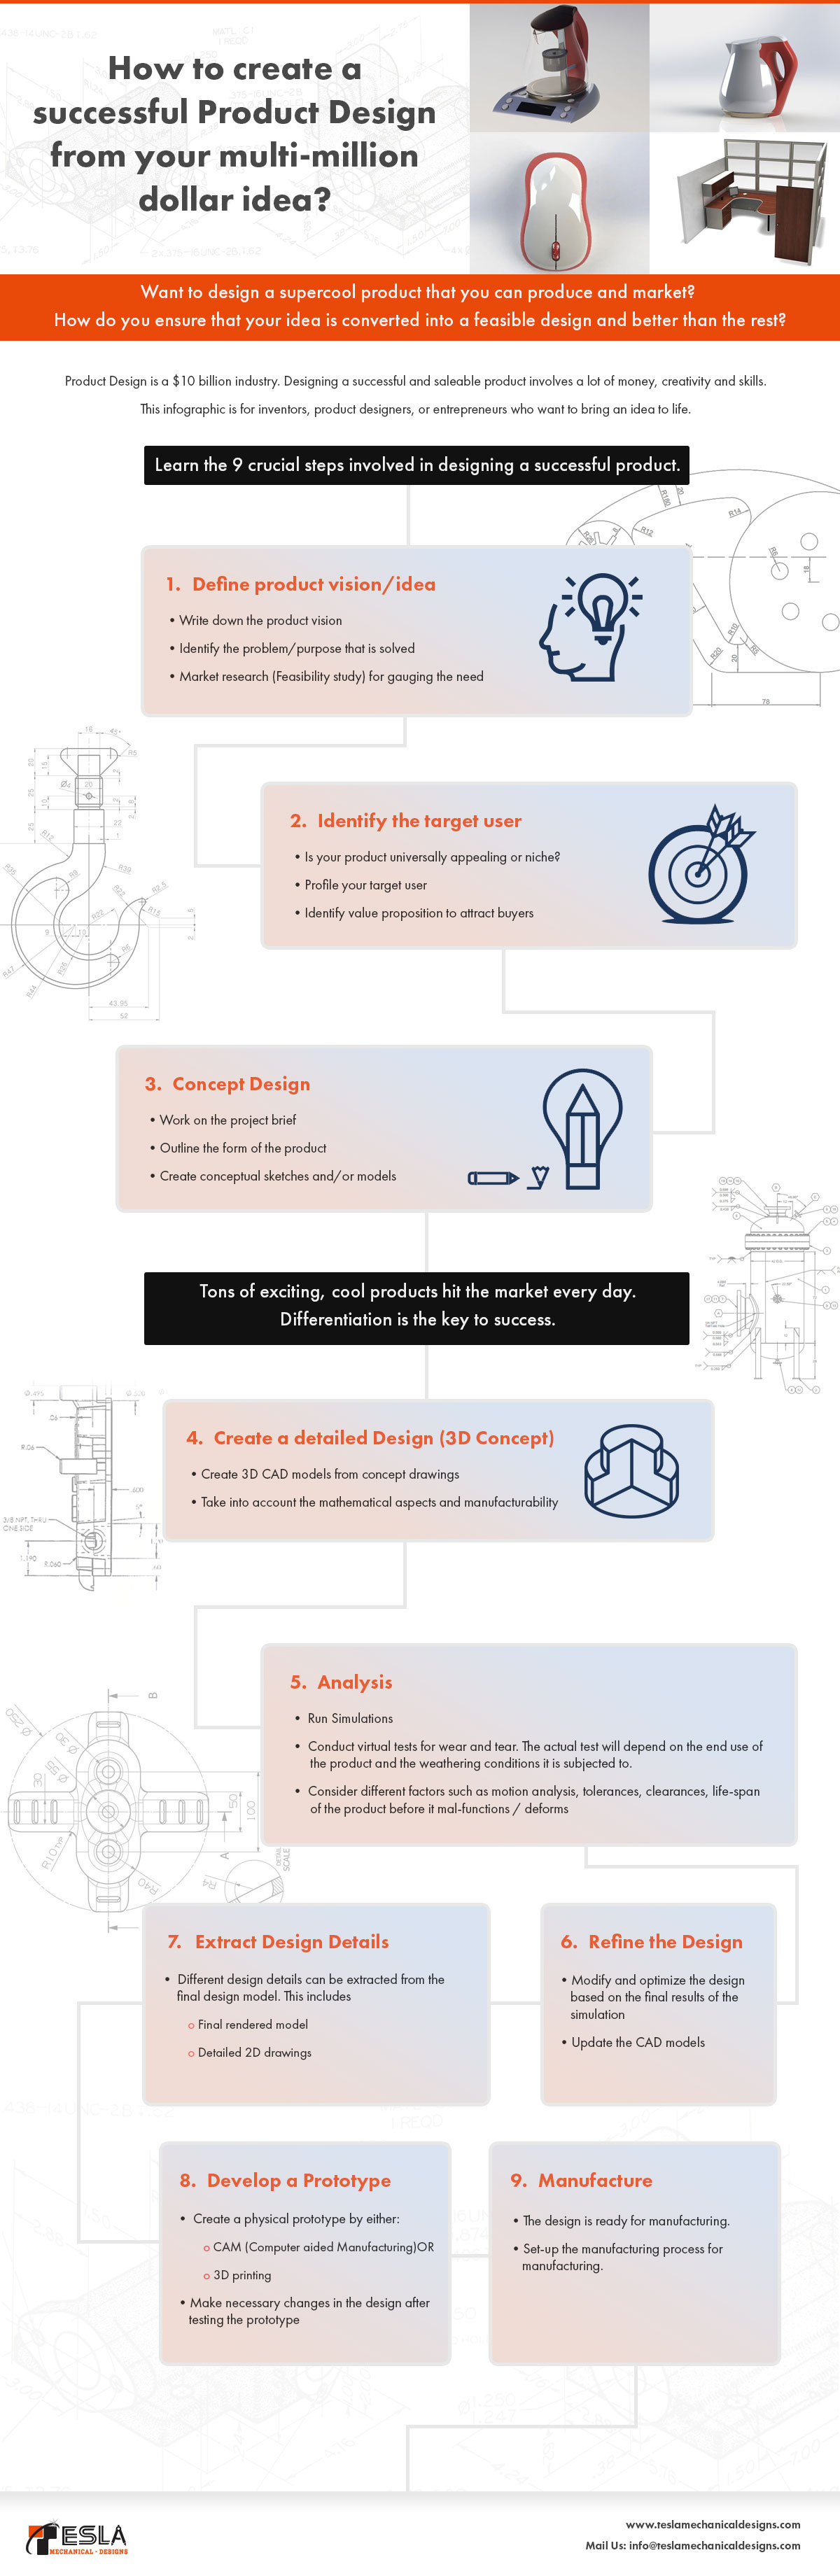 How to create a successful Product Design from your multi-million dollar idea?